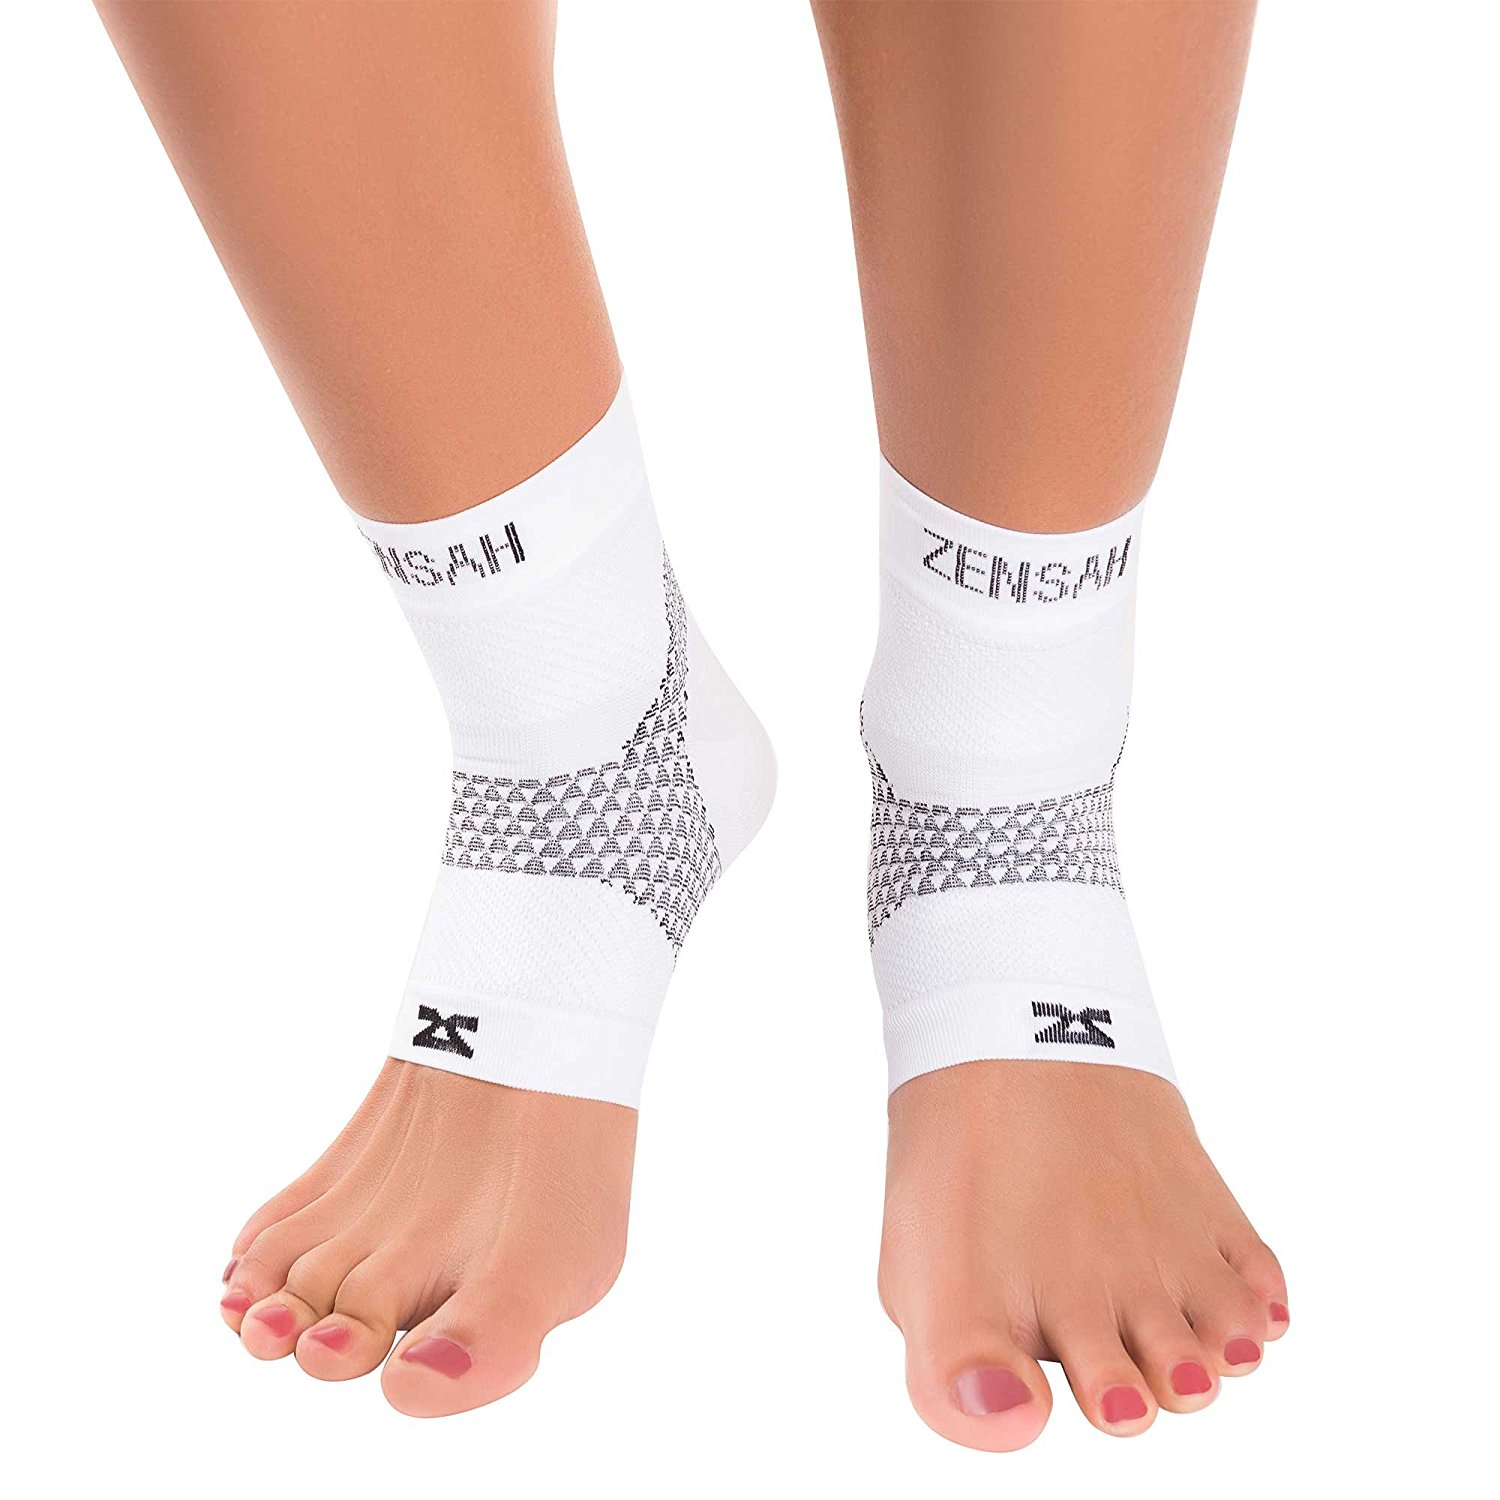 Zensah Plantar Fasciitis Sleeve - Relieve Heel Pain, Arch Support, Reduce Swelling - Compression Foot Sleeve, Plantar Fasciitis Sock